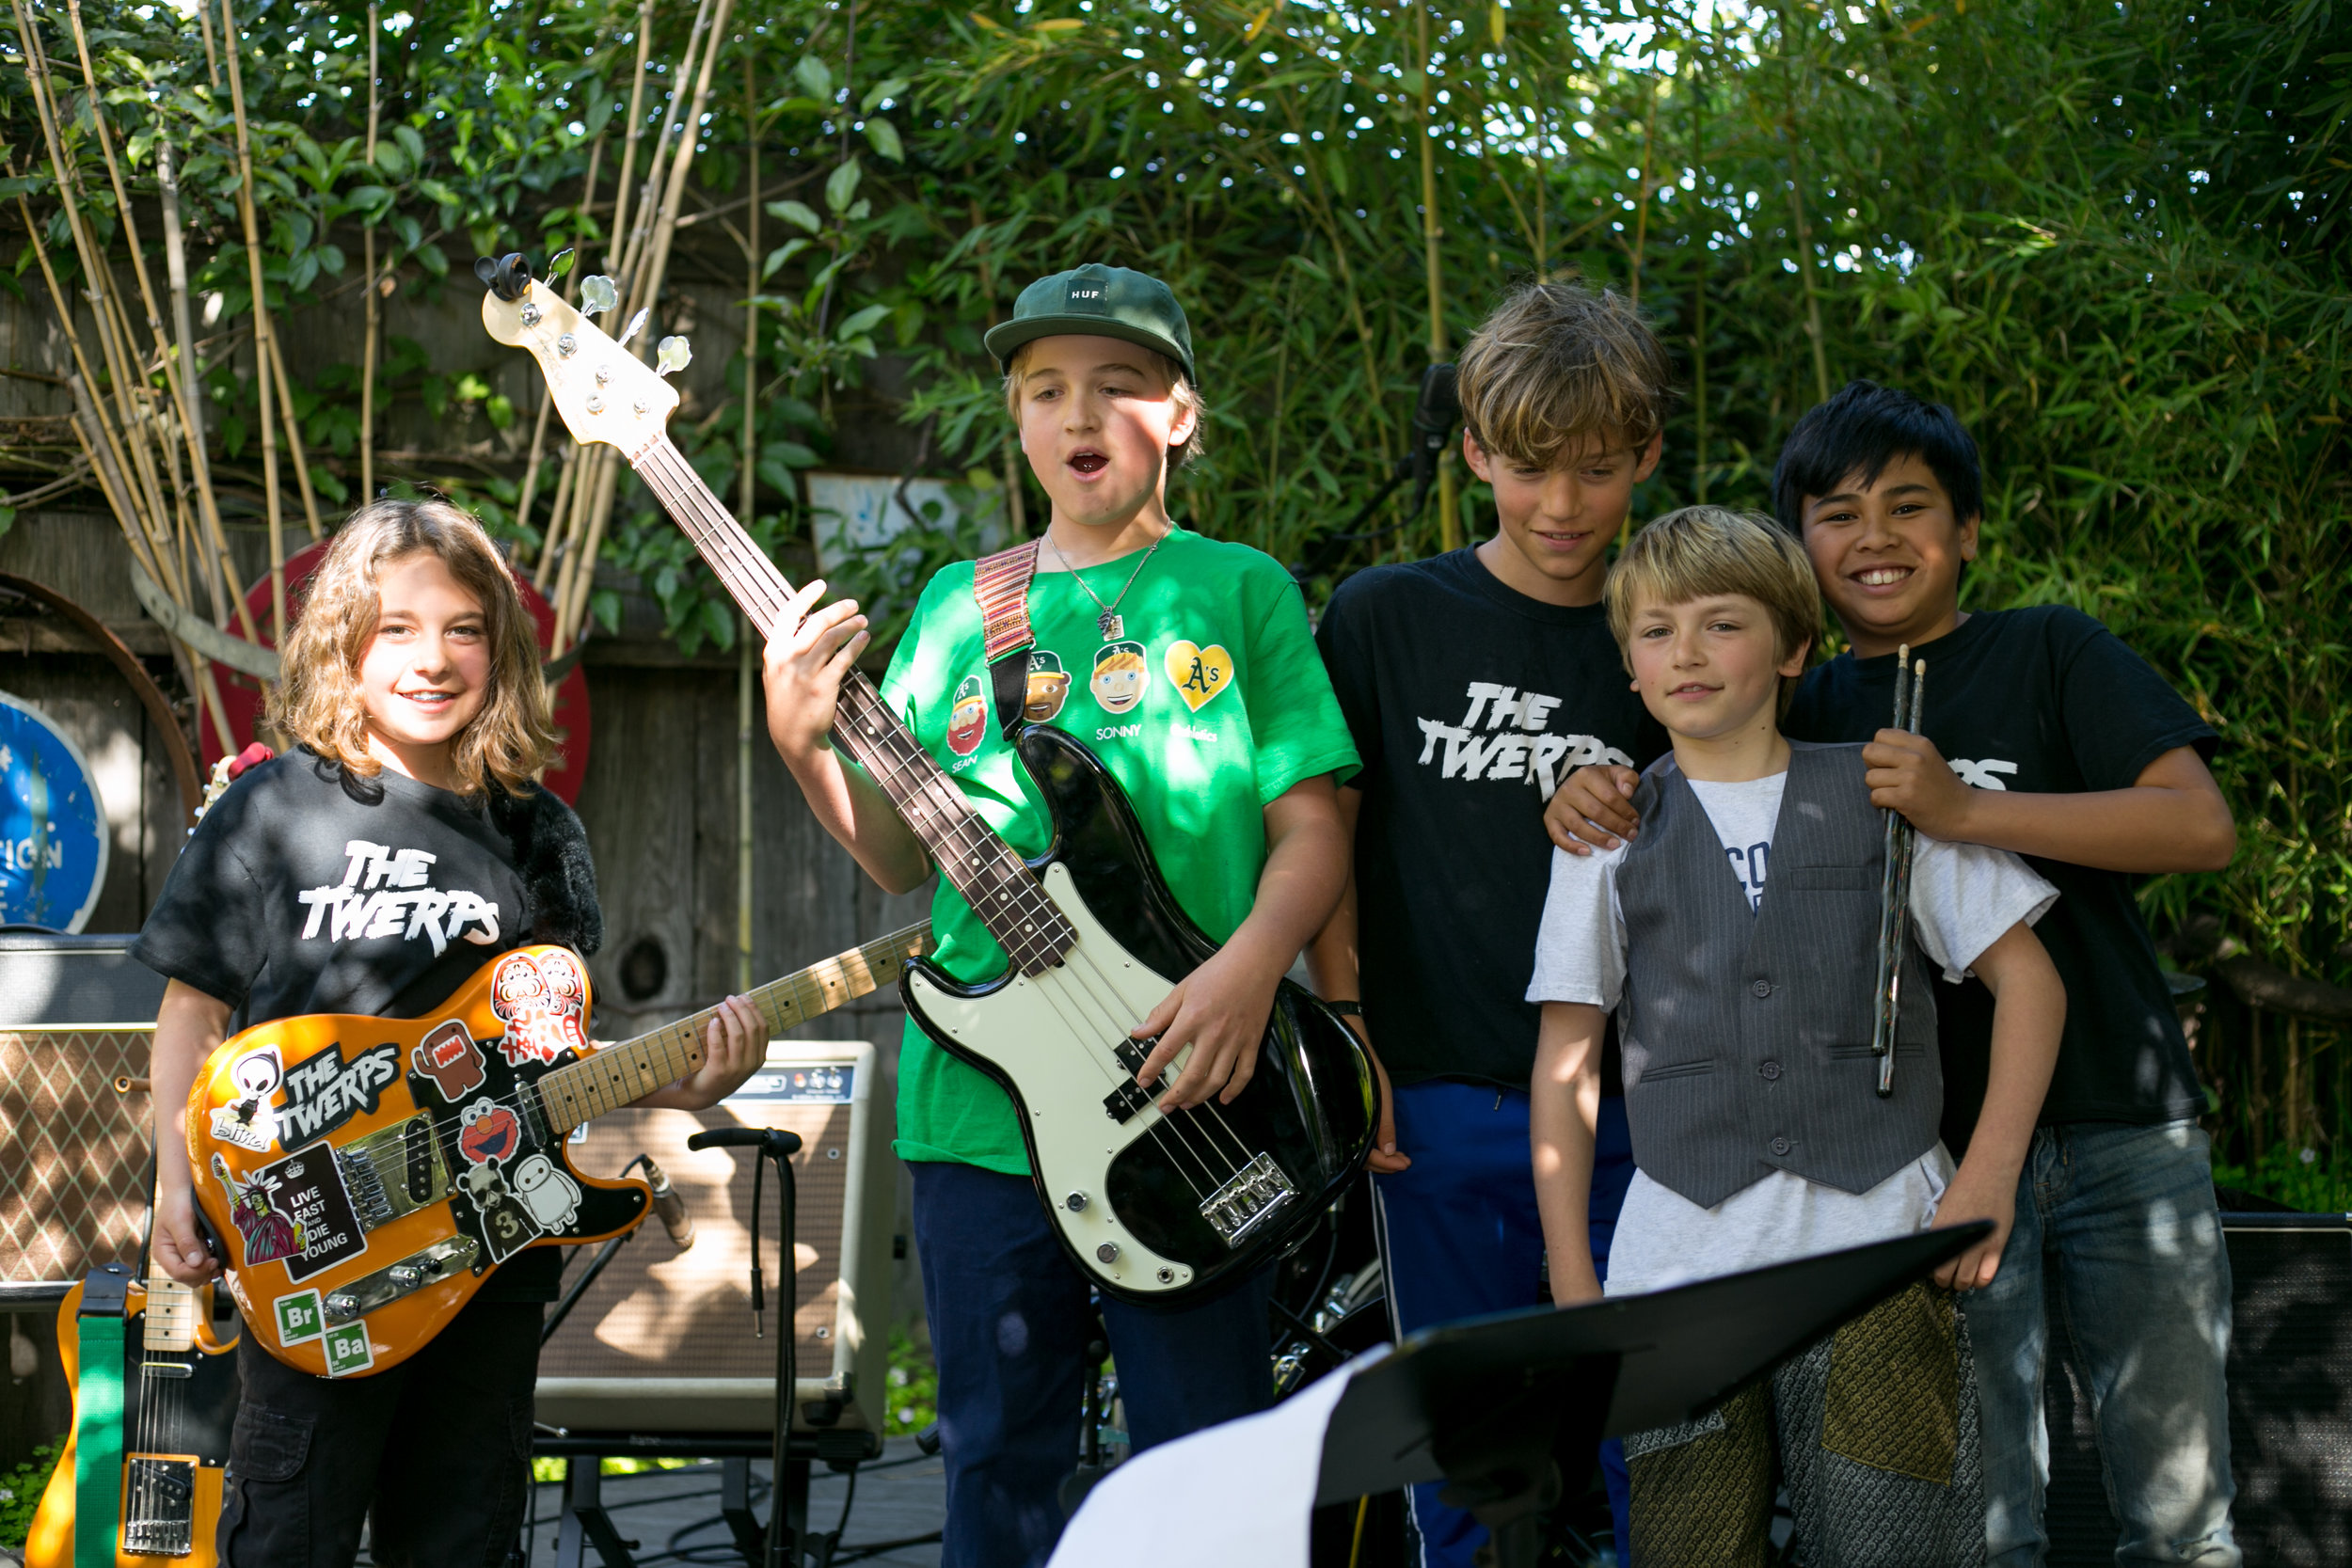 (Pictured above)   The Twerps Band picture at The Crepe Place on 4/22/18  (L-R: Daniel, August, Neli, Marlon & Isak)